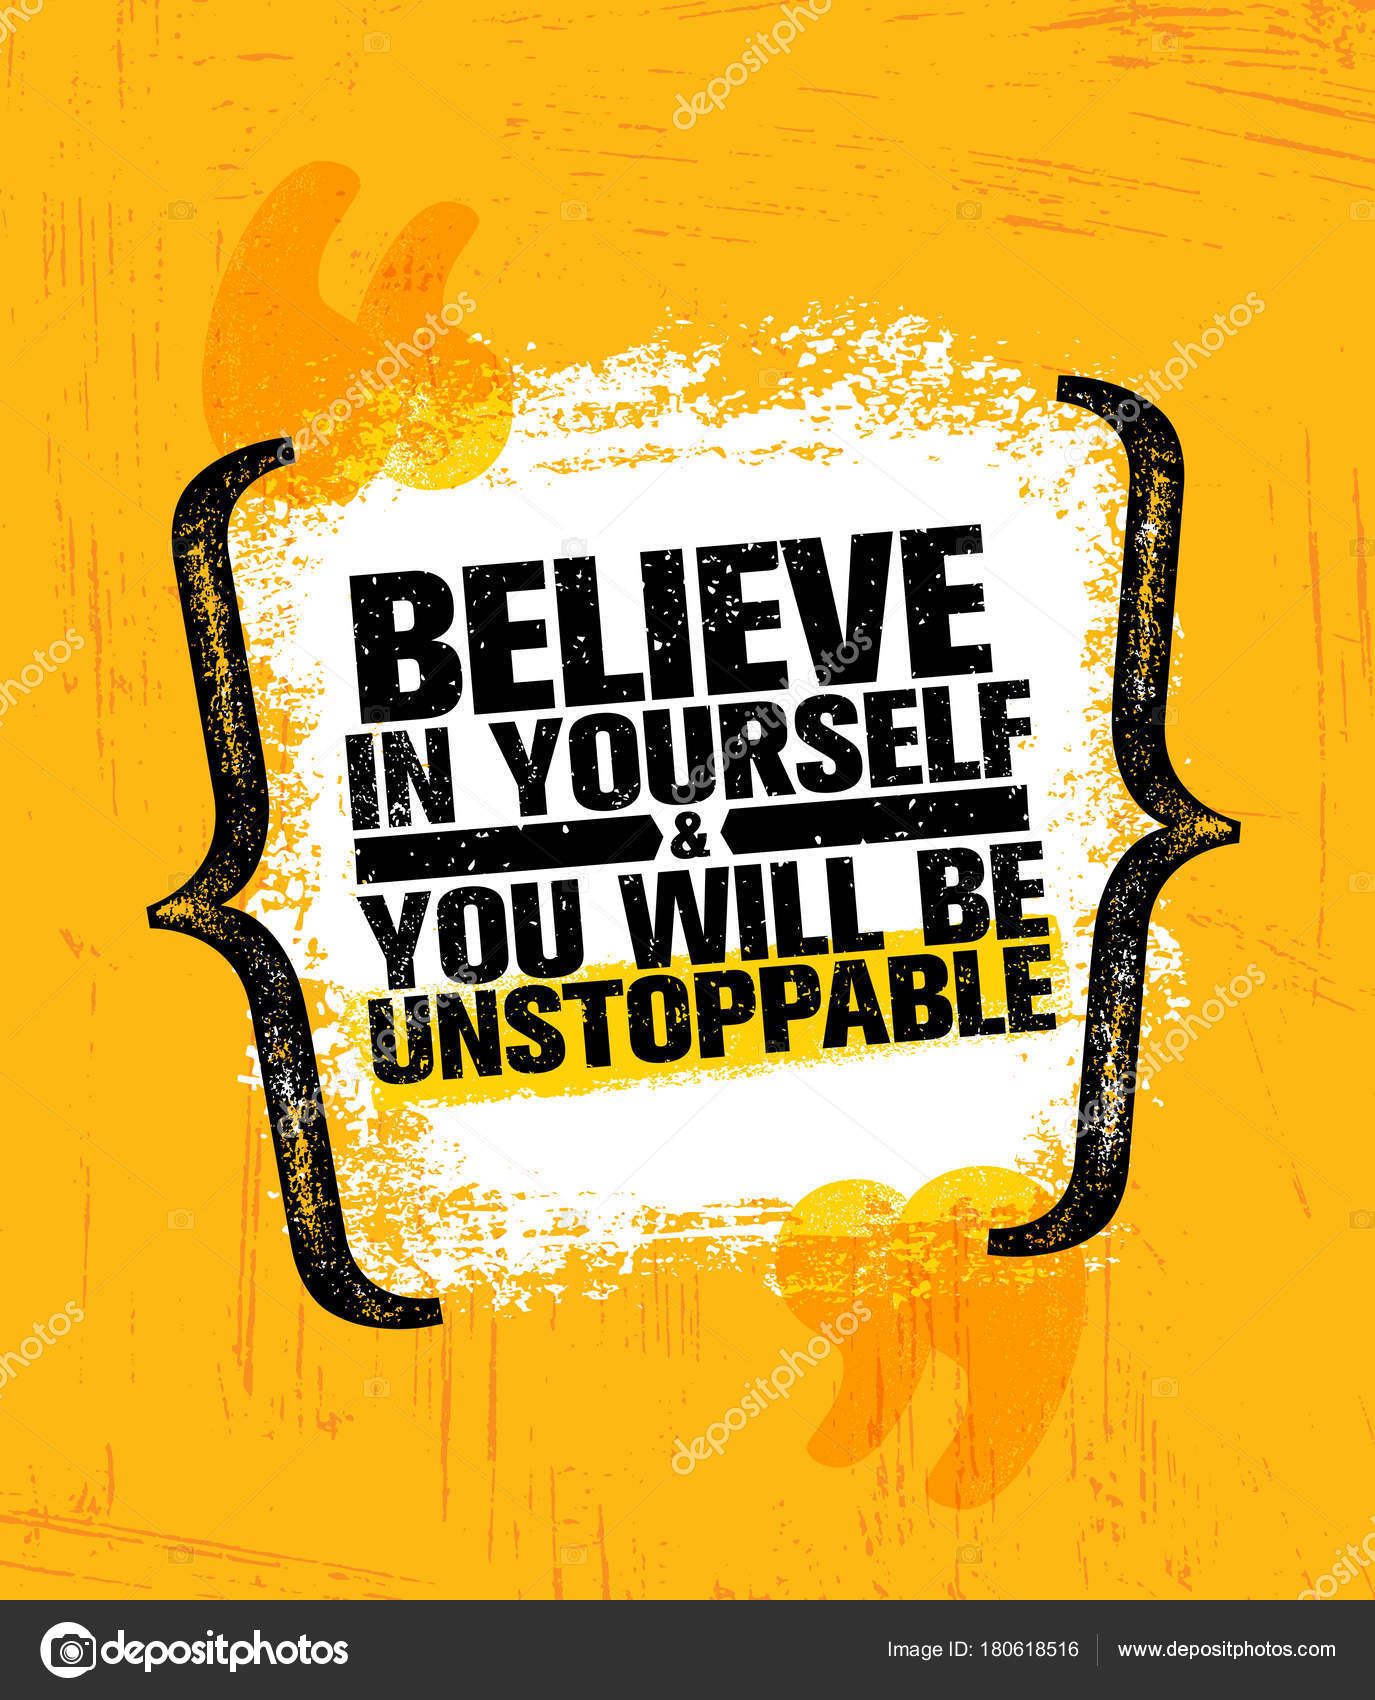 Believe yourself you unstoppable inspiring creative motivation quote believe in yourself and you will be unstoppable inspiring creative motivation quote poster template vector typography banner design concept on grunge solutioingenieria Image collections